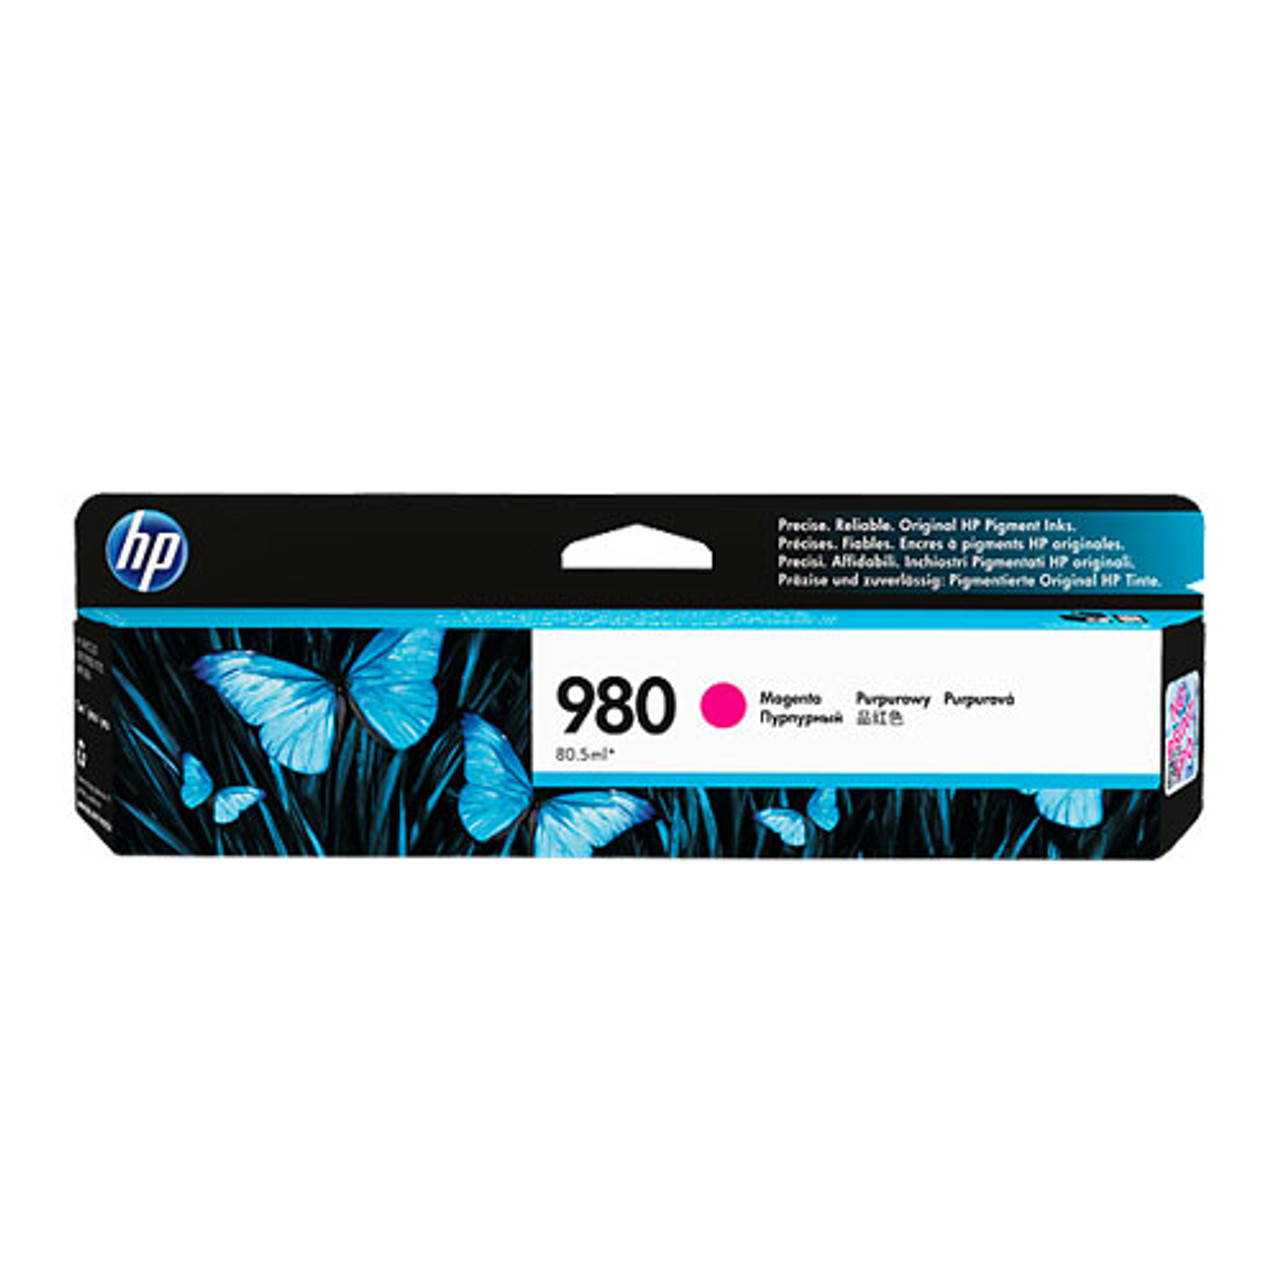 Image for HP #980 Magenta Ink Cartridge D8J08A 6,600 pages CX Computer Superstore